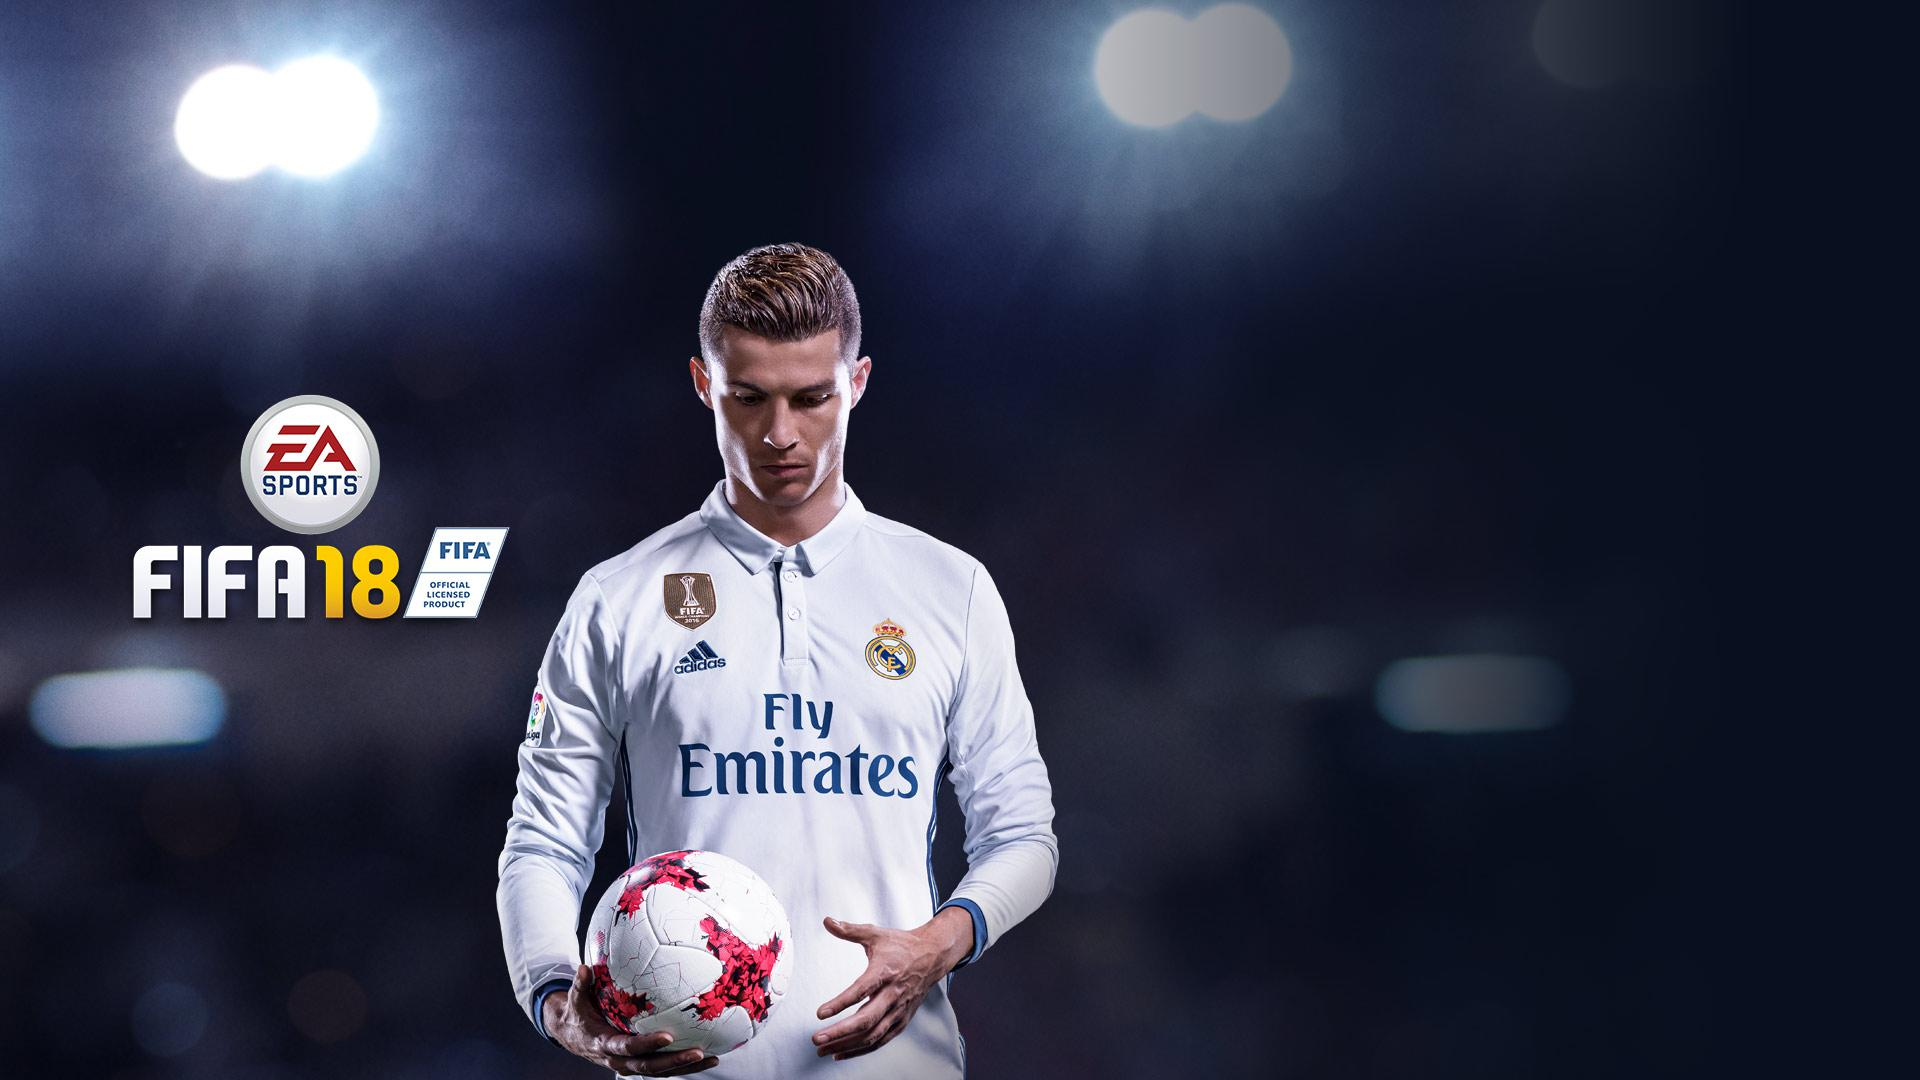 FIFA 18 launches worldwide on September 29 – with a demo dropping on September 15